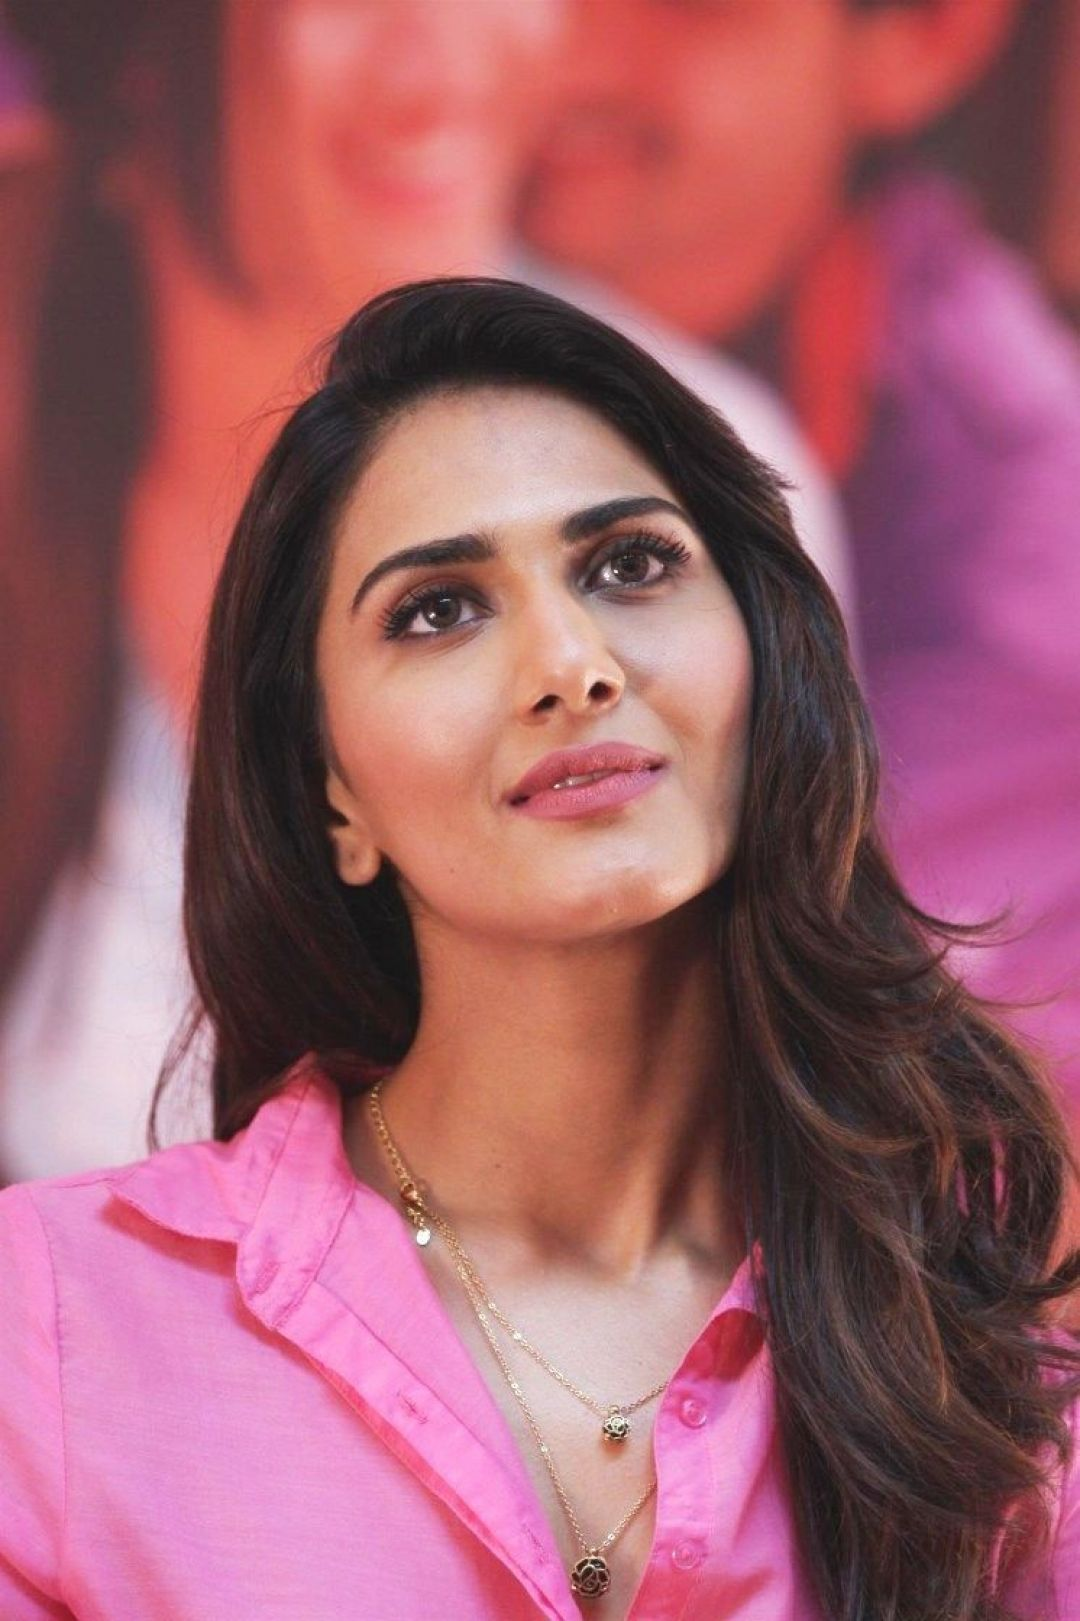 Vaani Kapoor - Android, iPhone, Desktop HD Backgrounds / Wallpapers (1080p, 4k) HD Wallpapers (Desktop Background / Android / iPhone) (1080p, 4k) (342903) - Celebrities